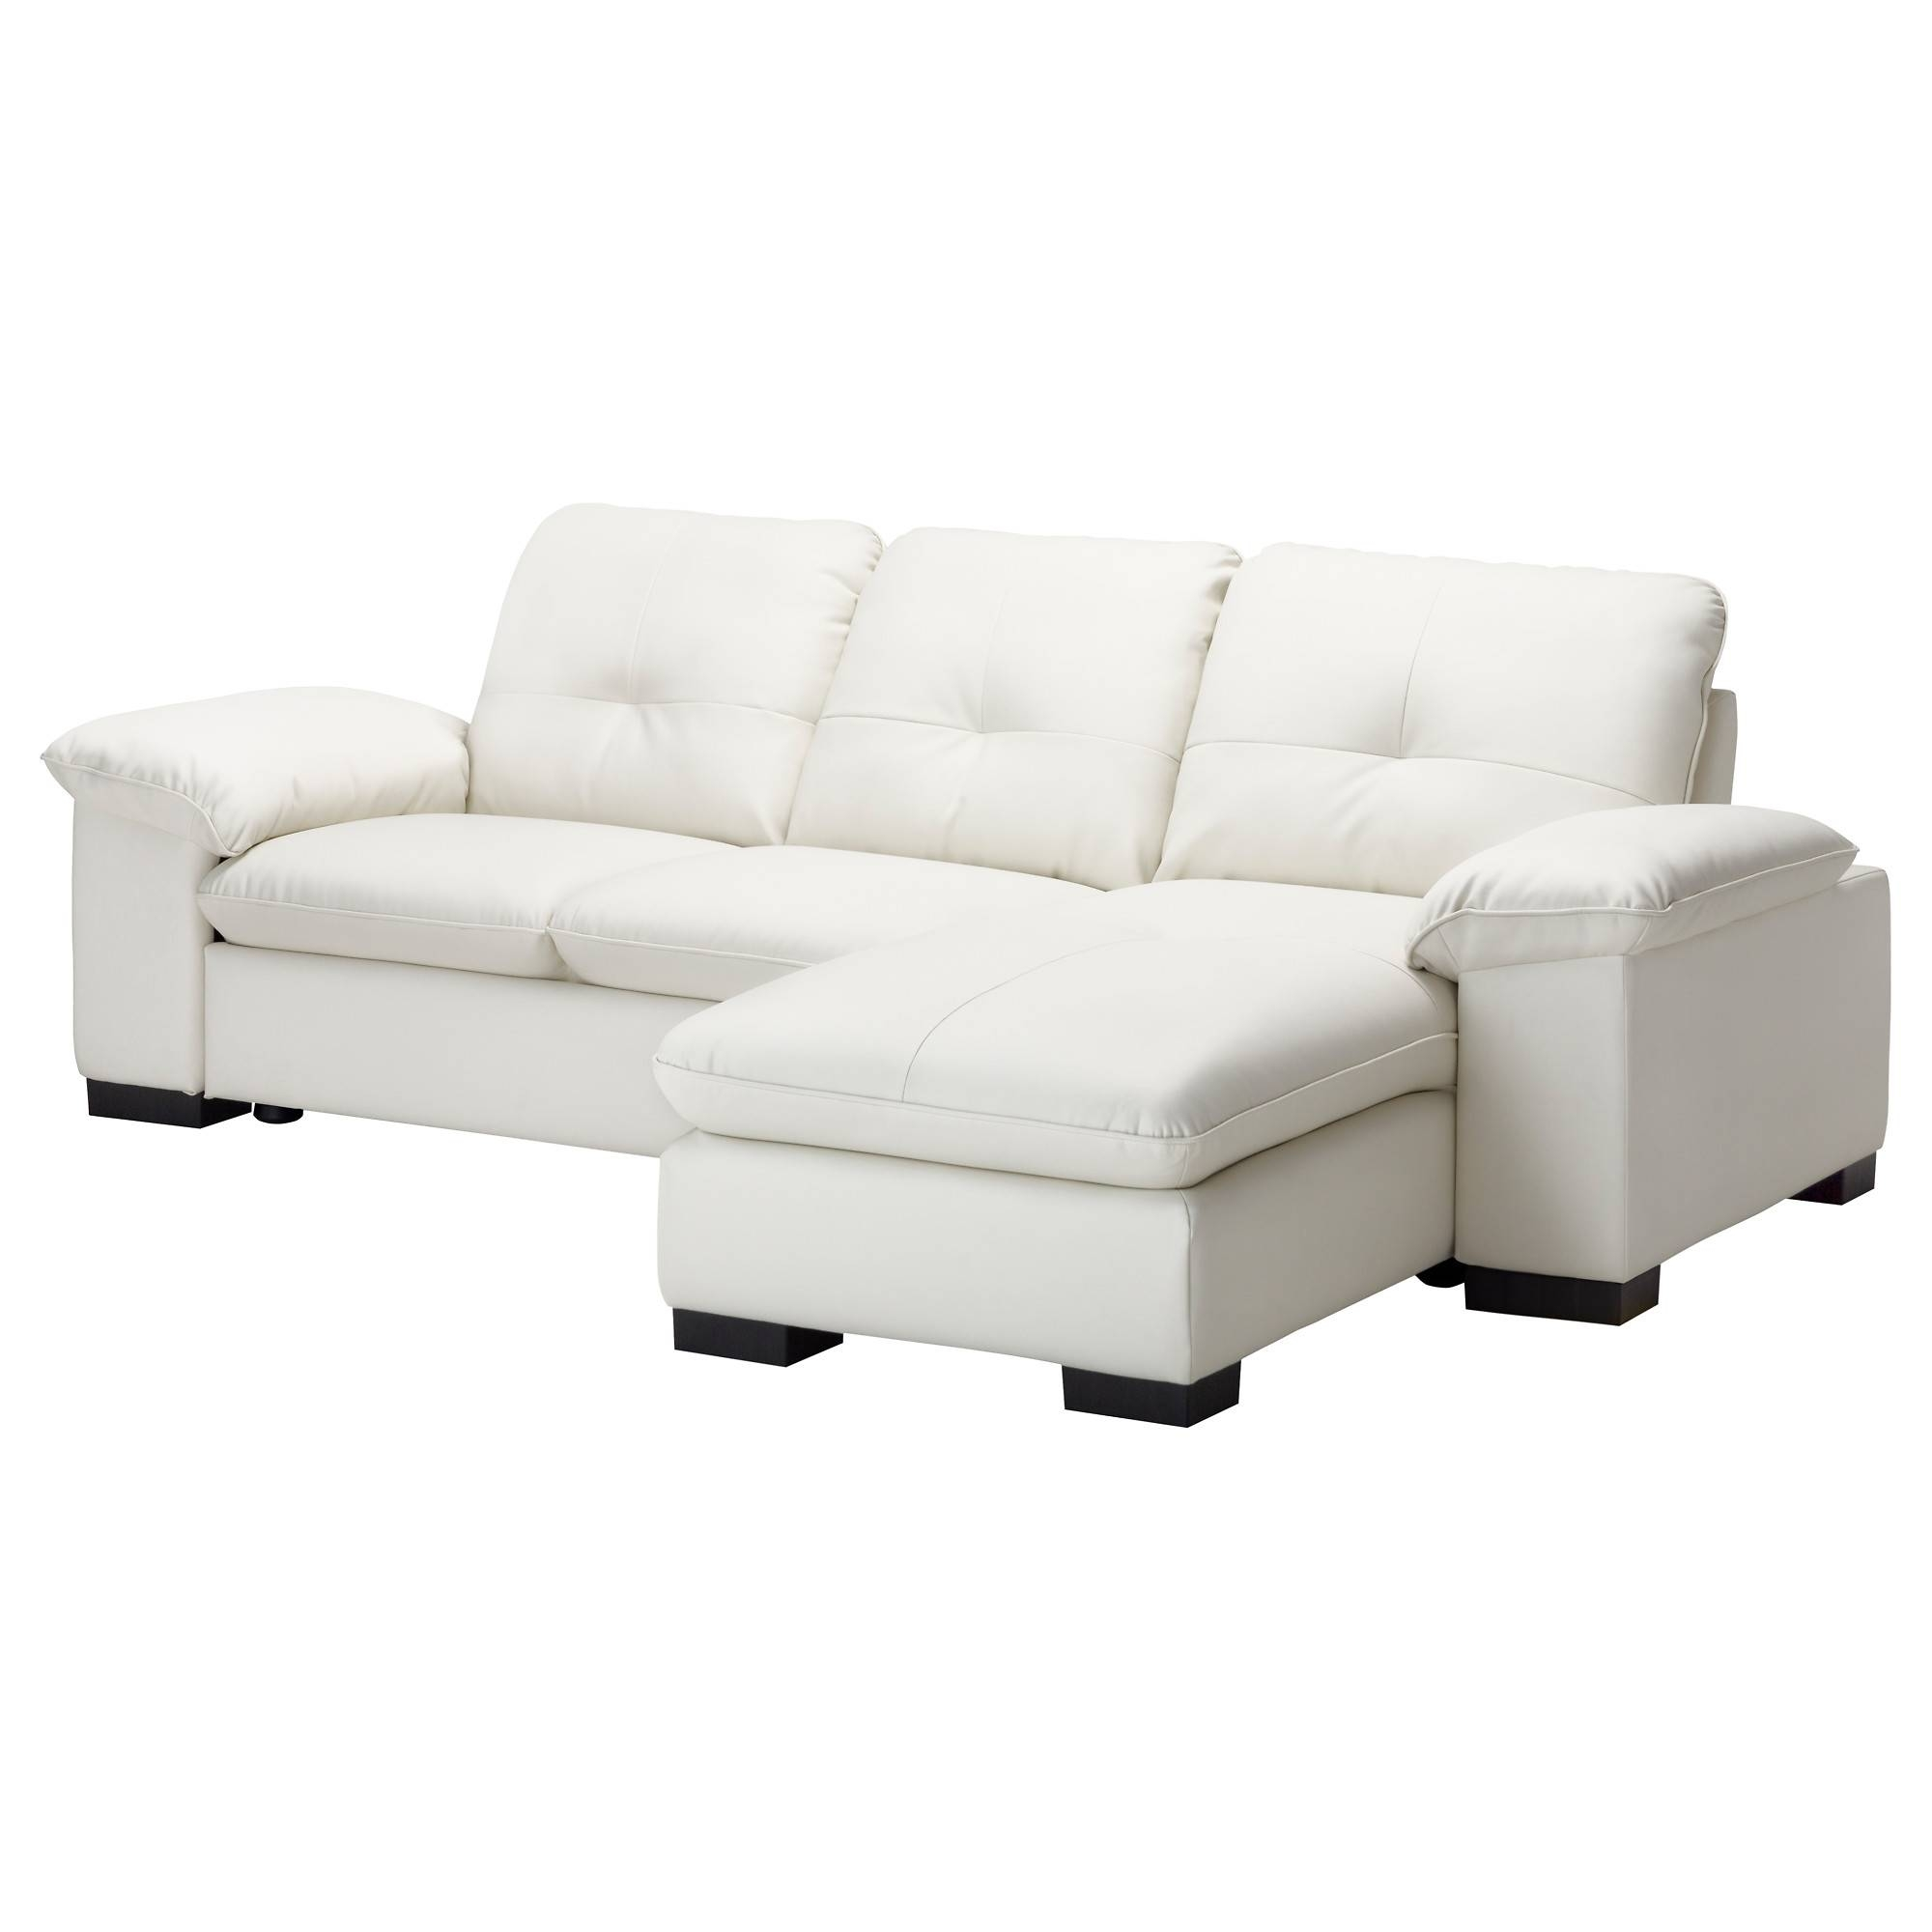 Ikea Sofas Chaise Longue The Best Ikea Chaise Lounge Sofa